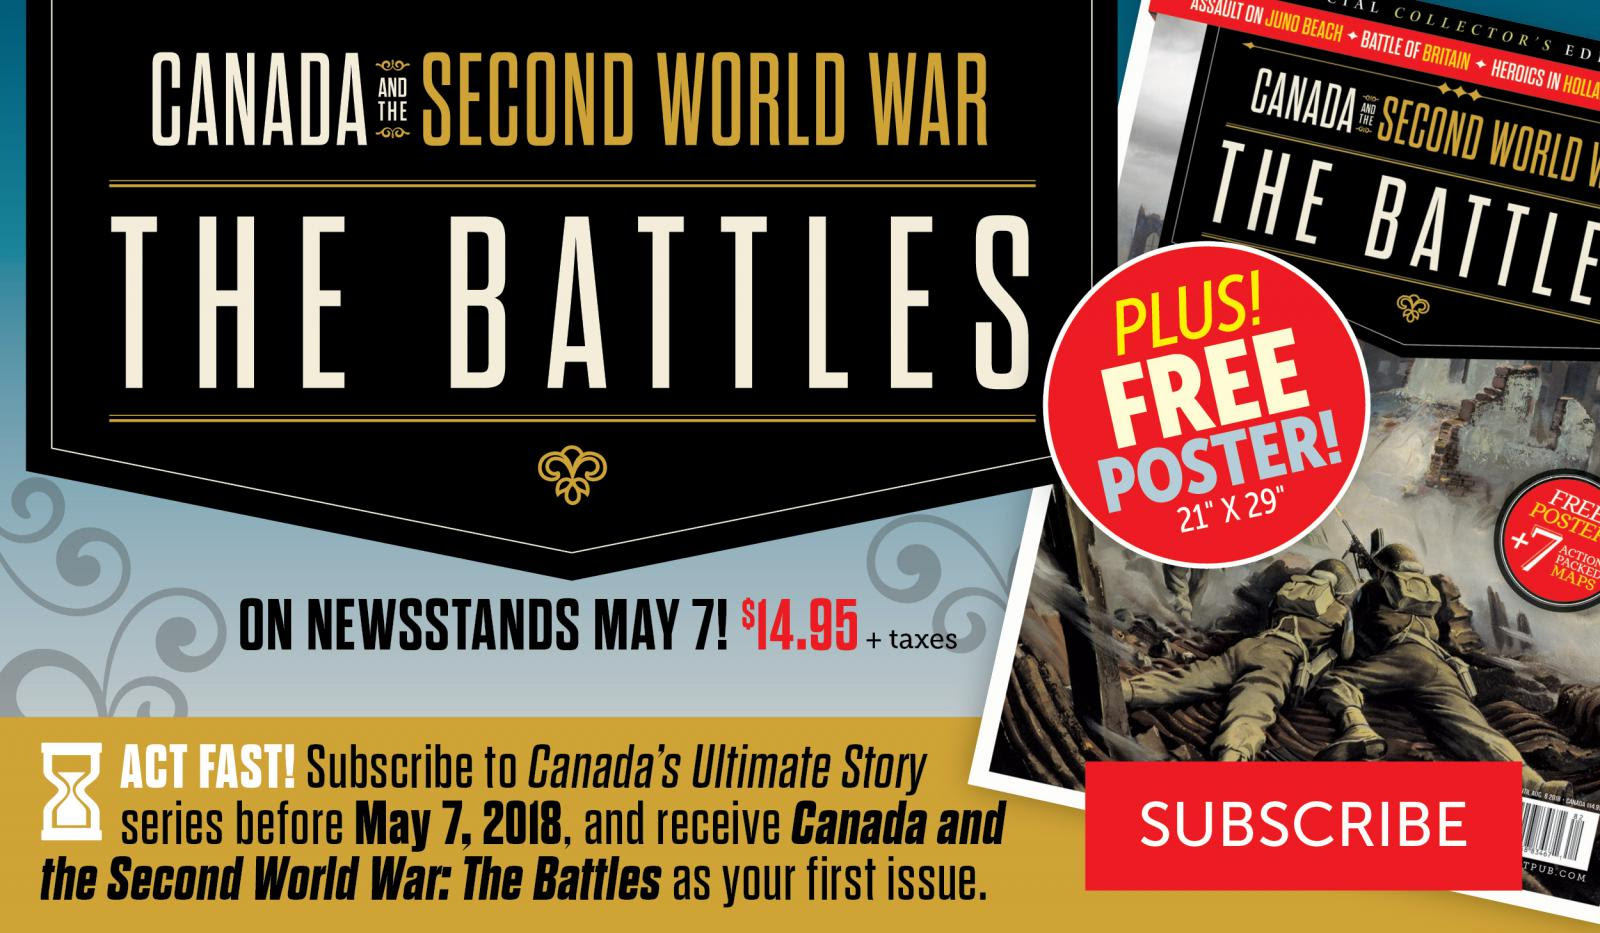 Act Fast! Subscribe to Canada's Ultimate Story before May 7!